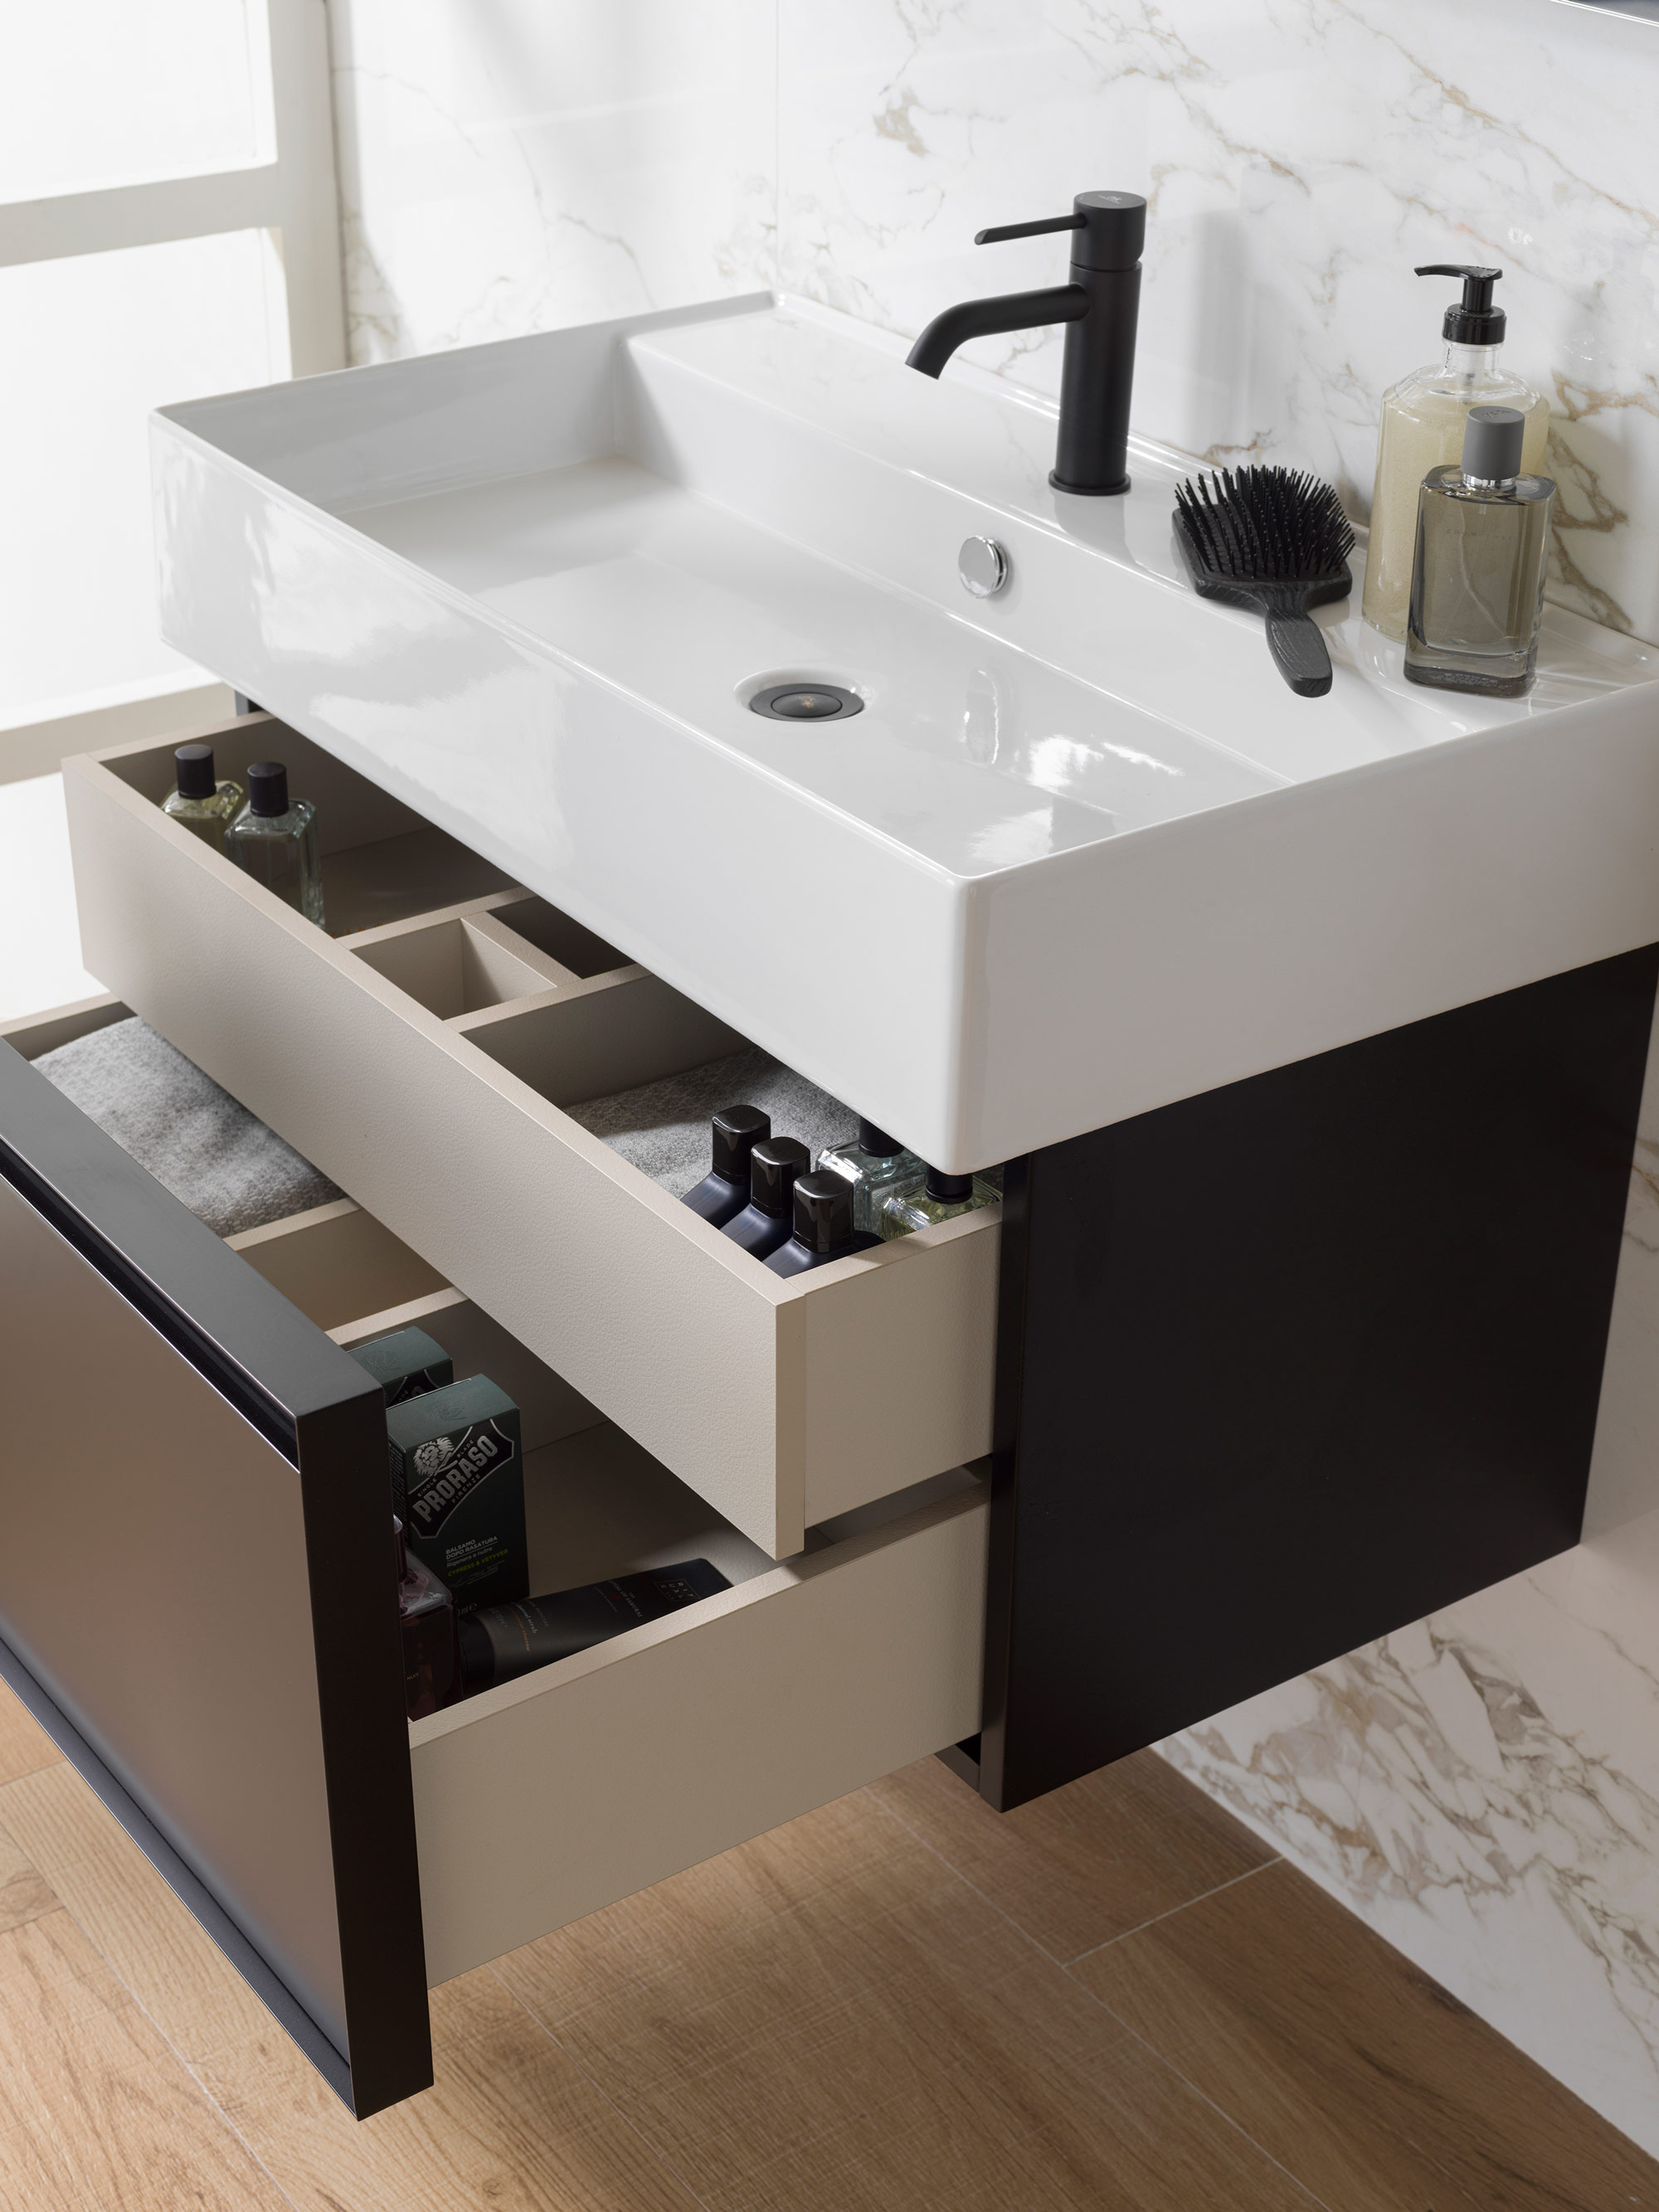 storage-small-bathrooms-mueble-pure-80cm